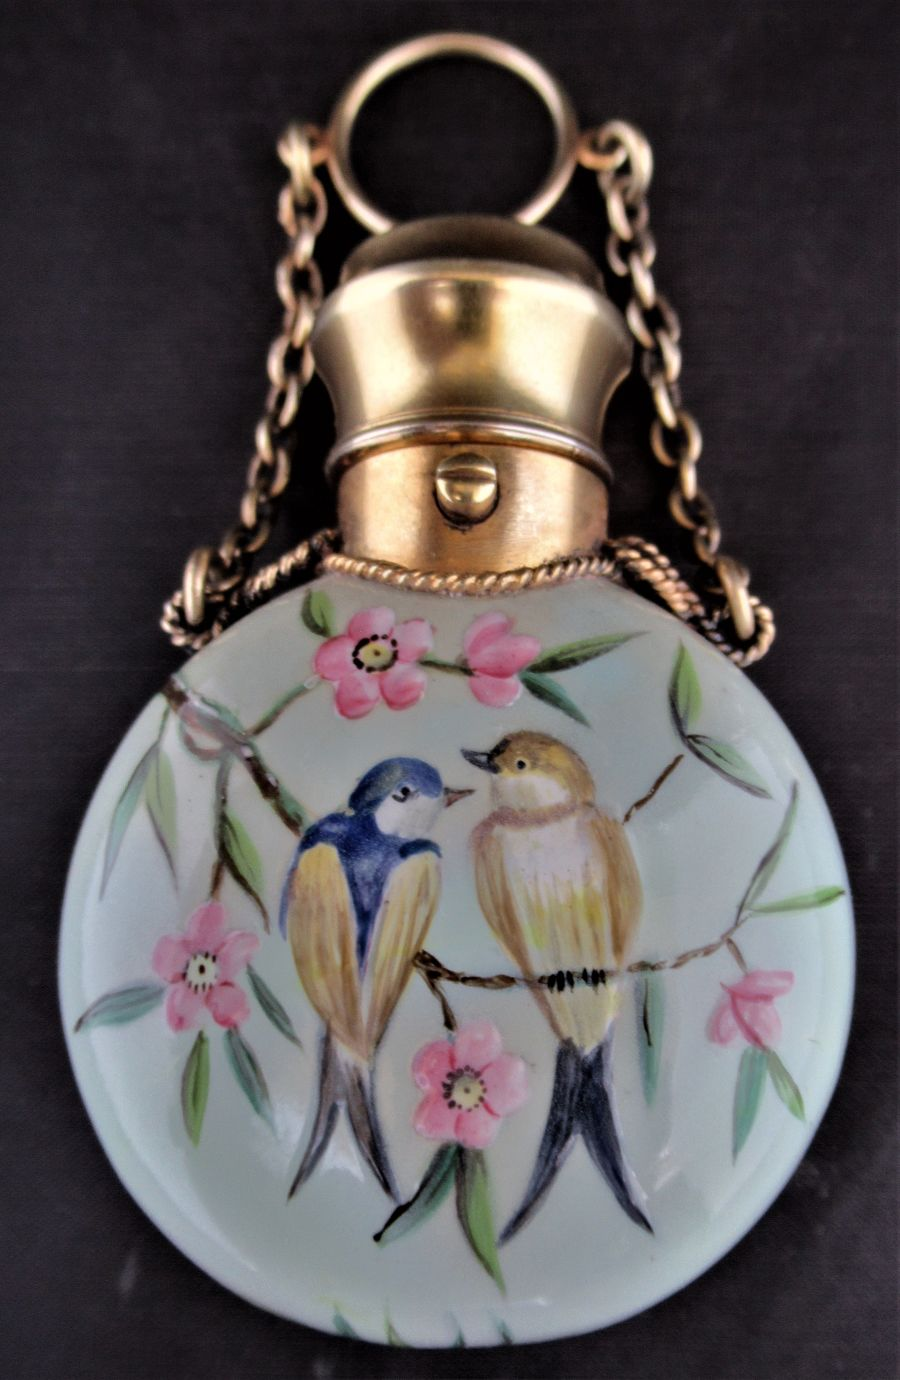 Sampson Mordan English porcelain and gilt mounted scent bottle, Aesthetic period, c1875